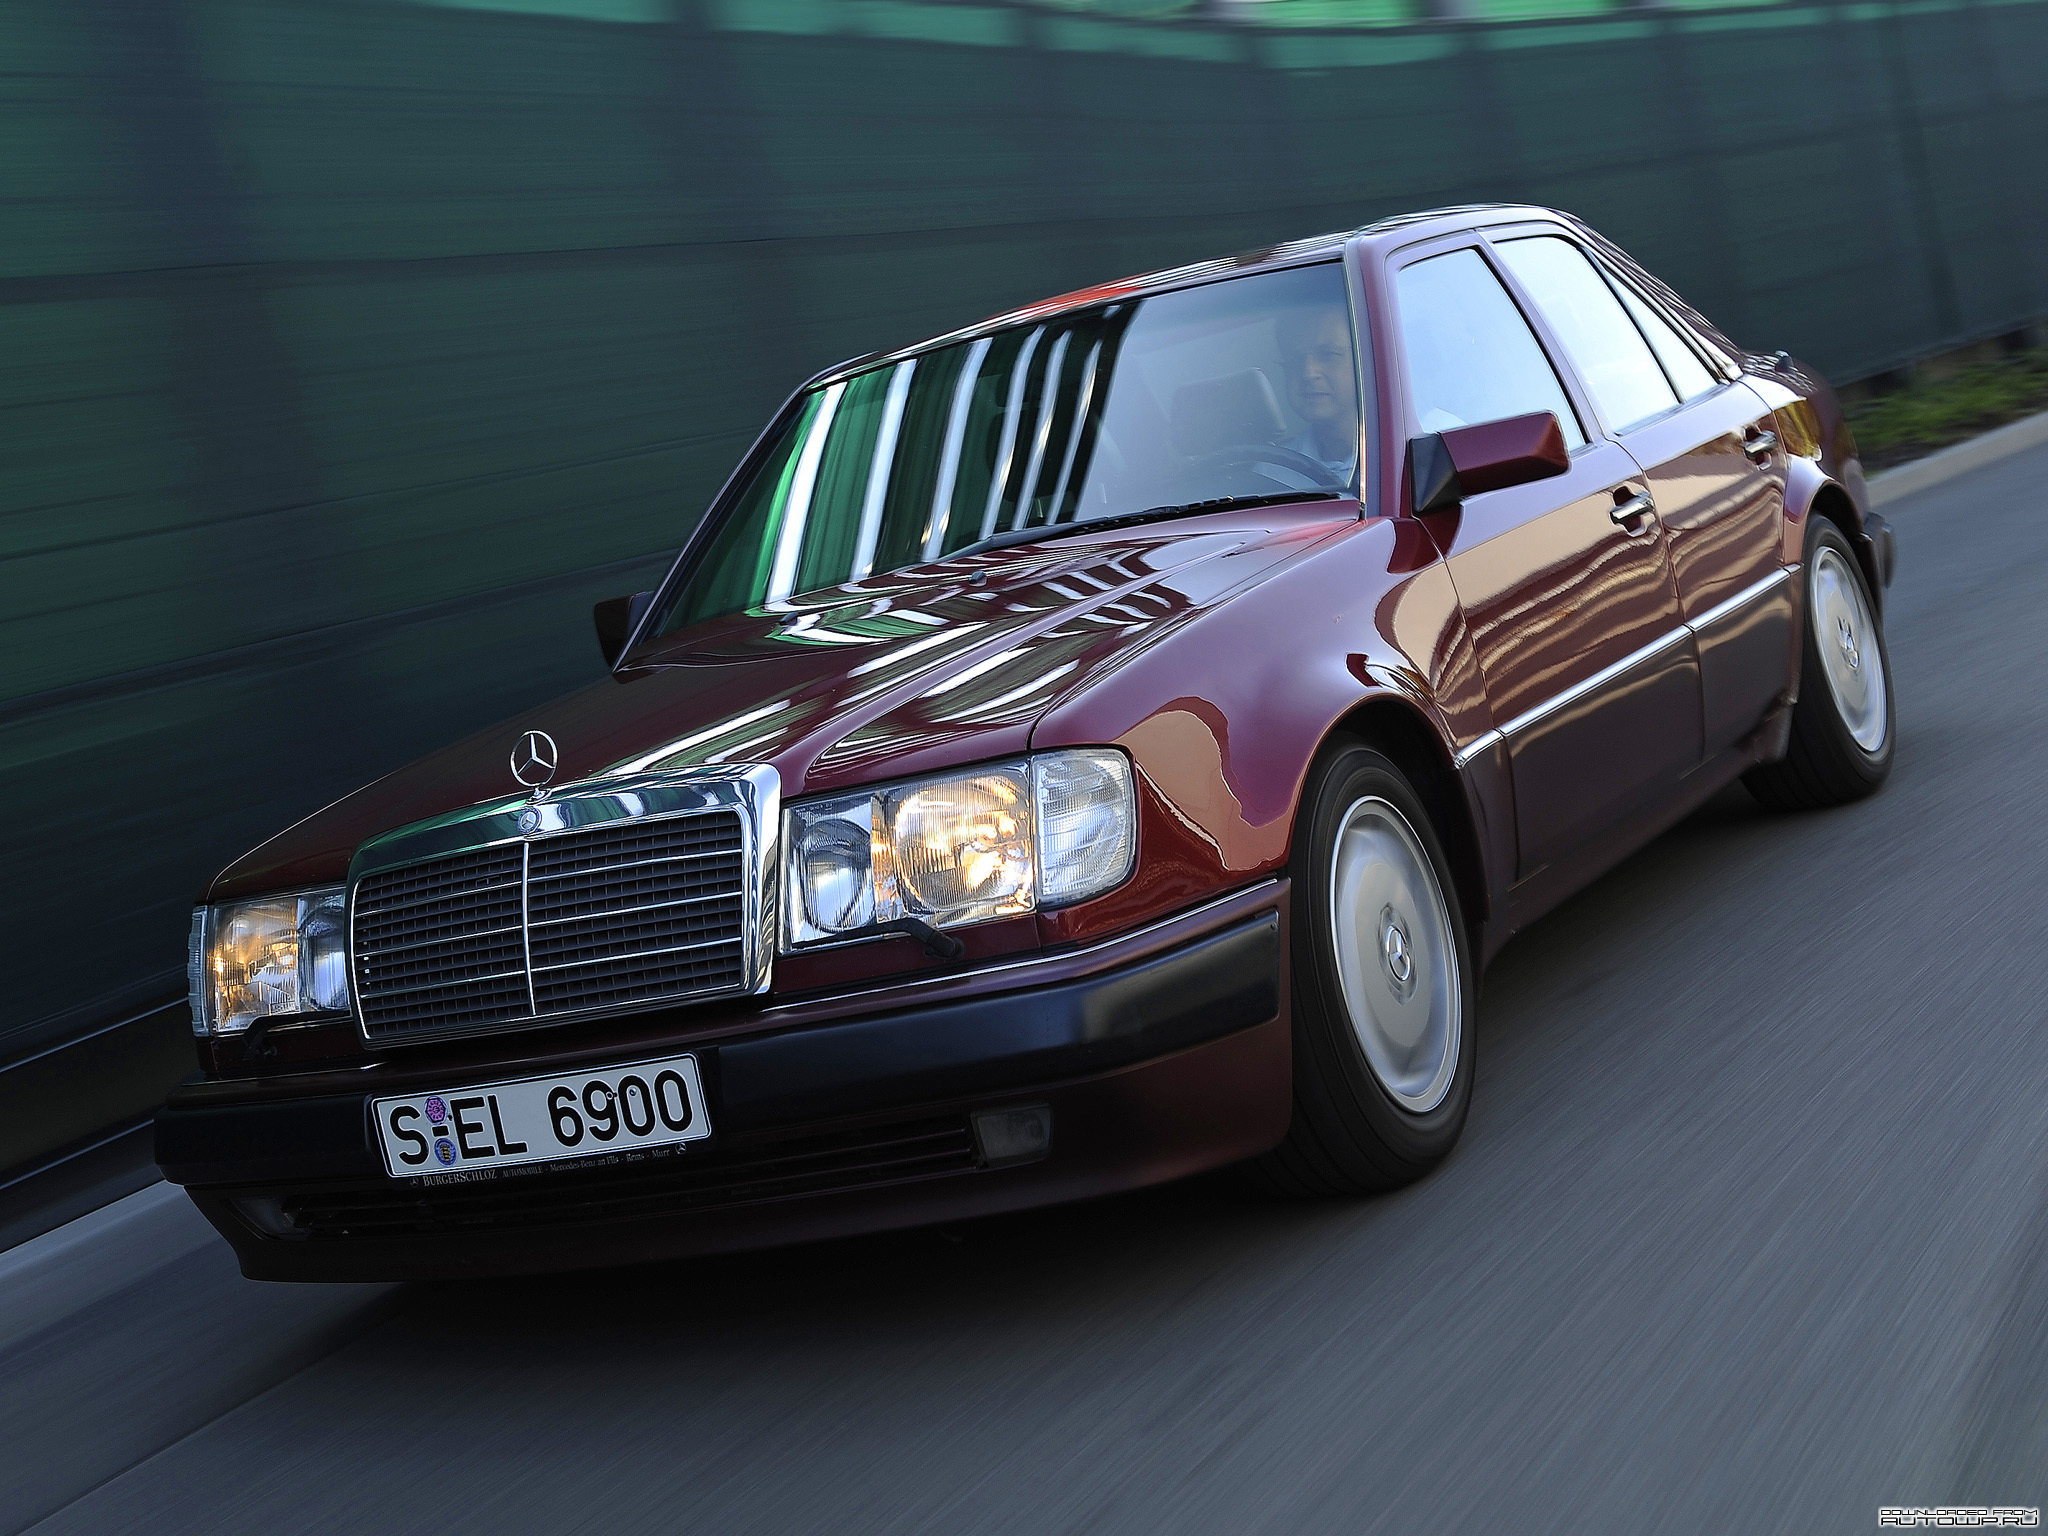 Mercedes benz e class w124 photos photogallery with 25 for Mercedes benz w